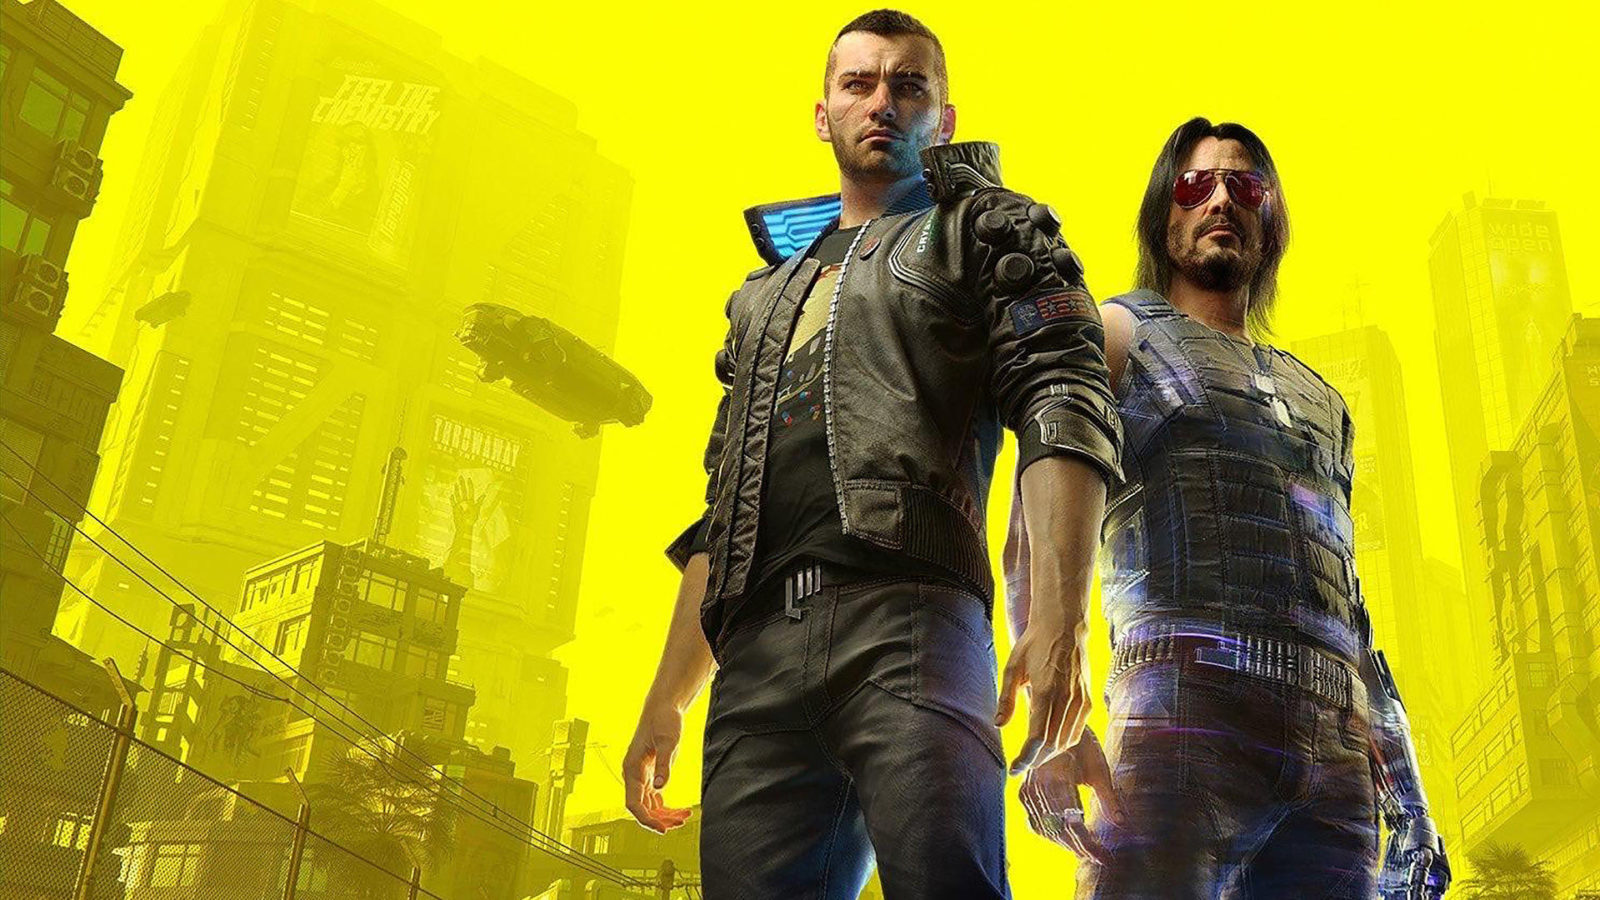 How do I change the difficulty level in Cyberpunk 2077?